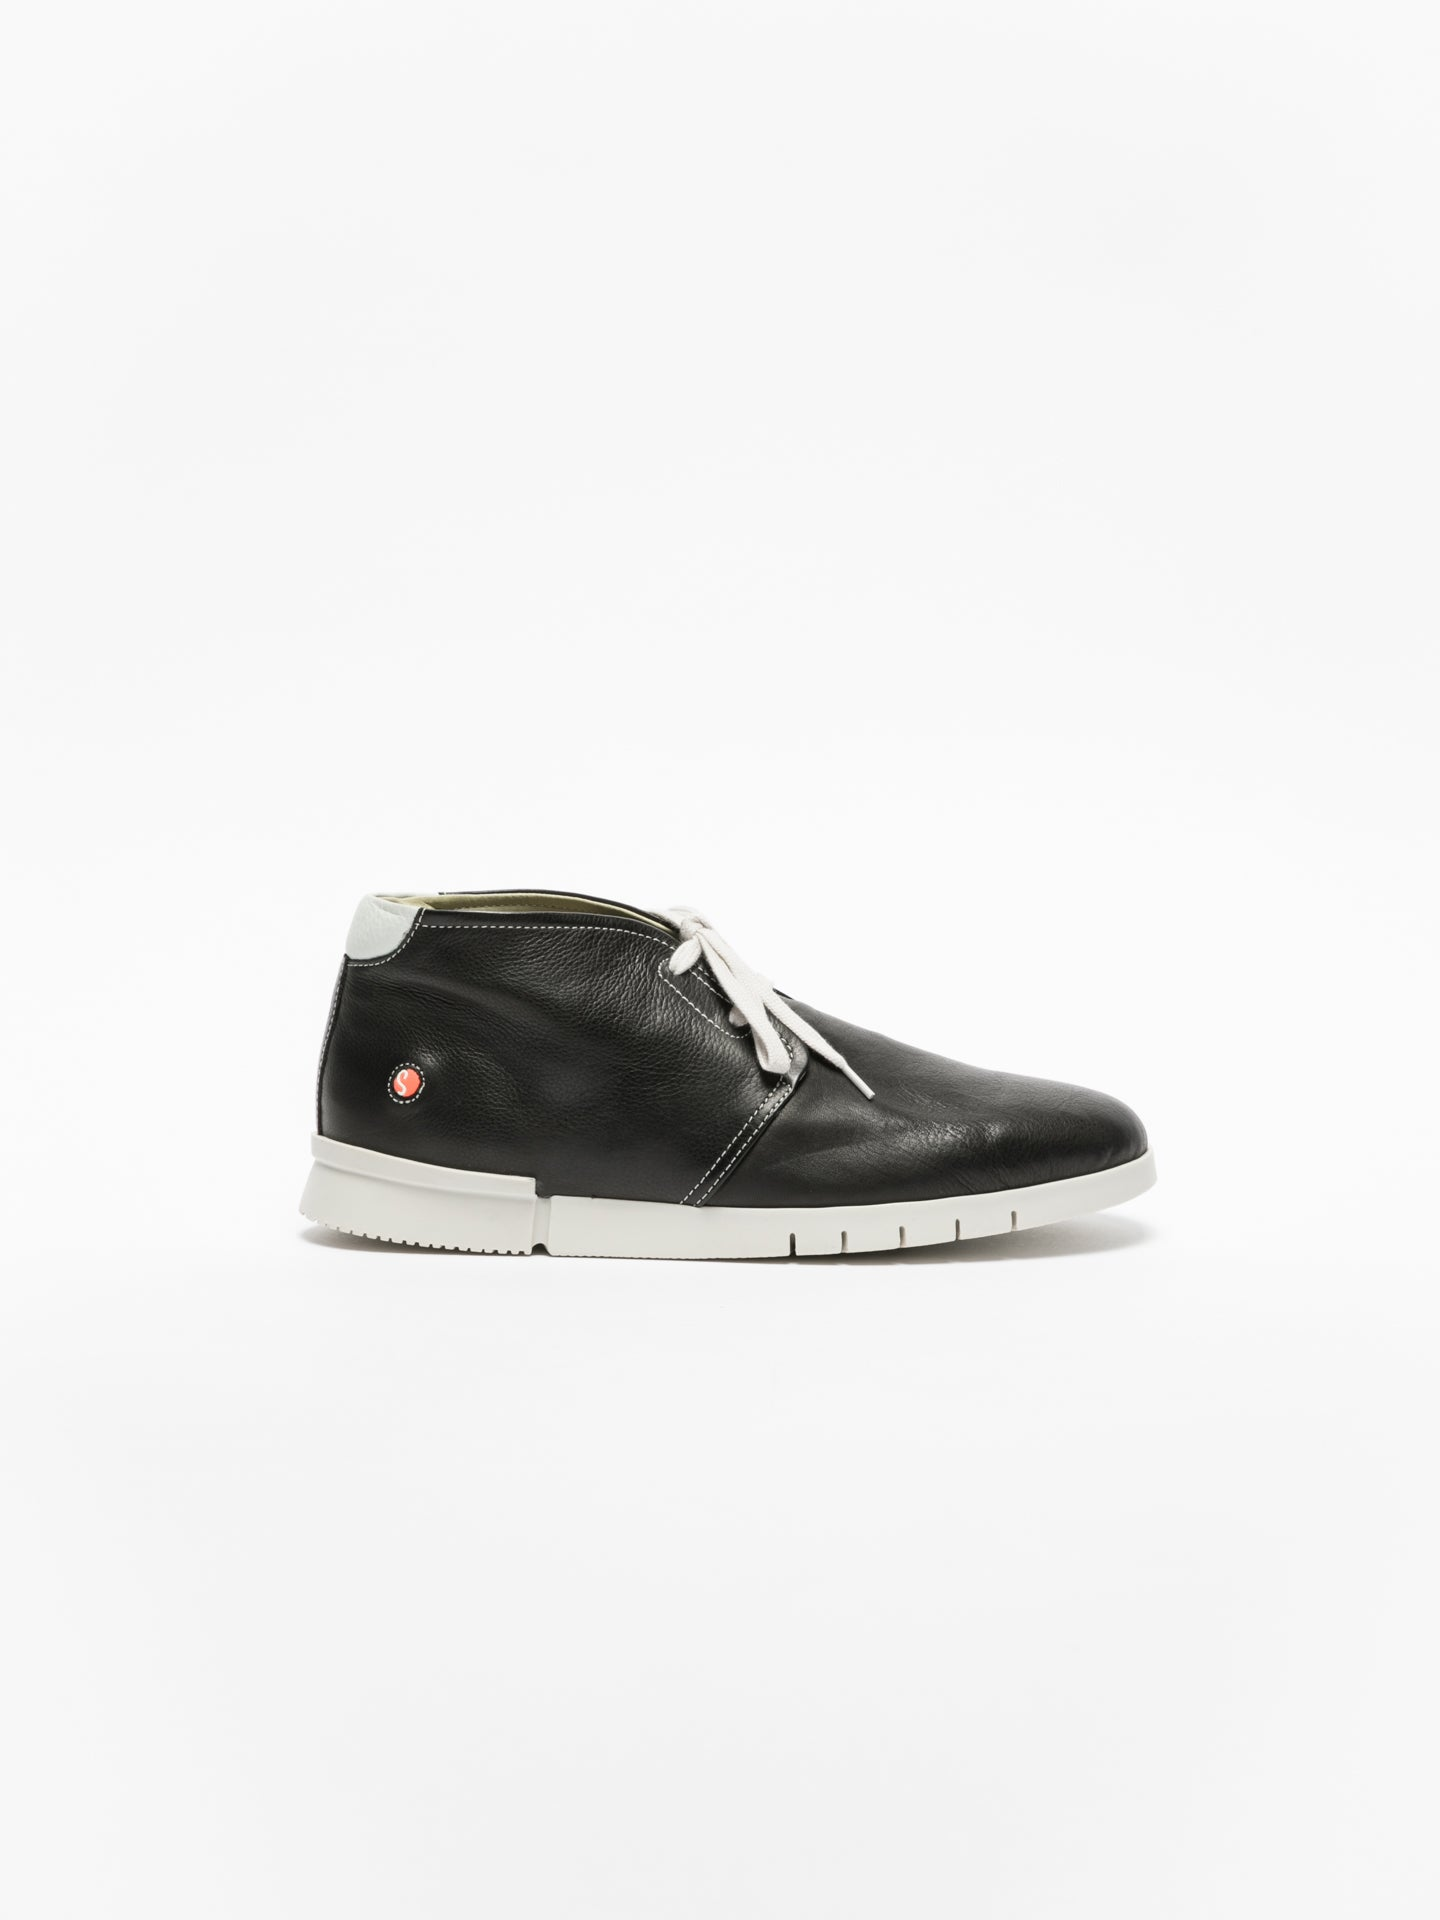 Softinos Black Hi-Top Sneakers